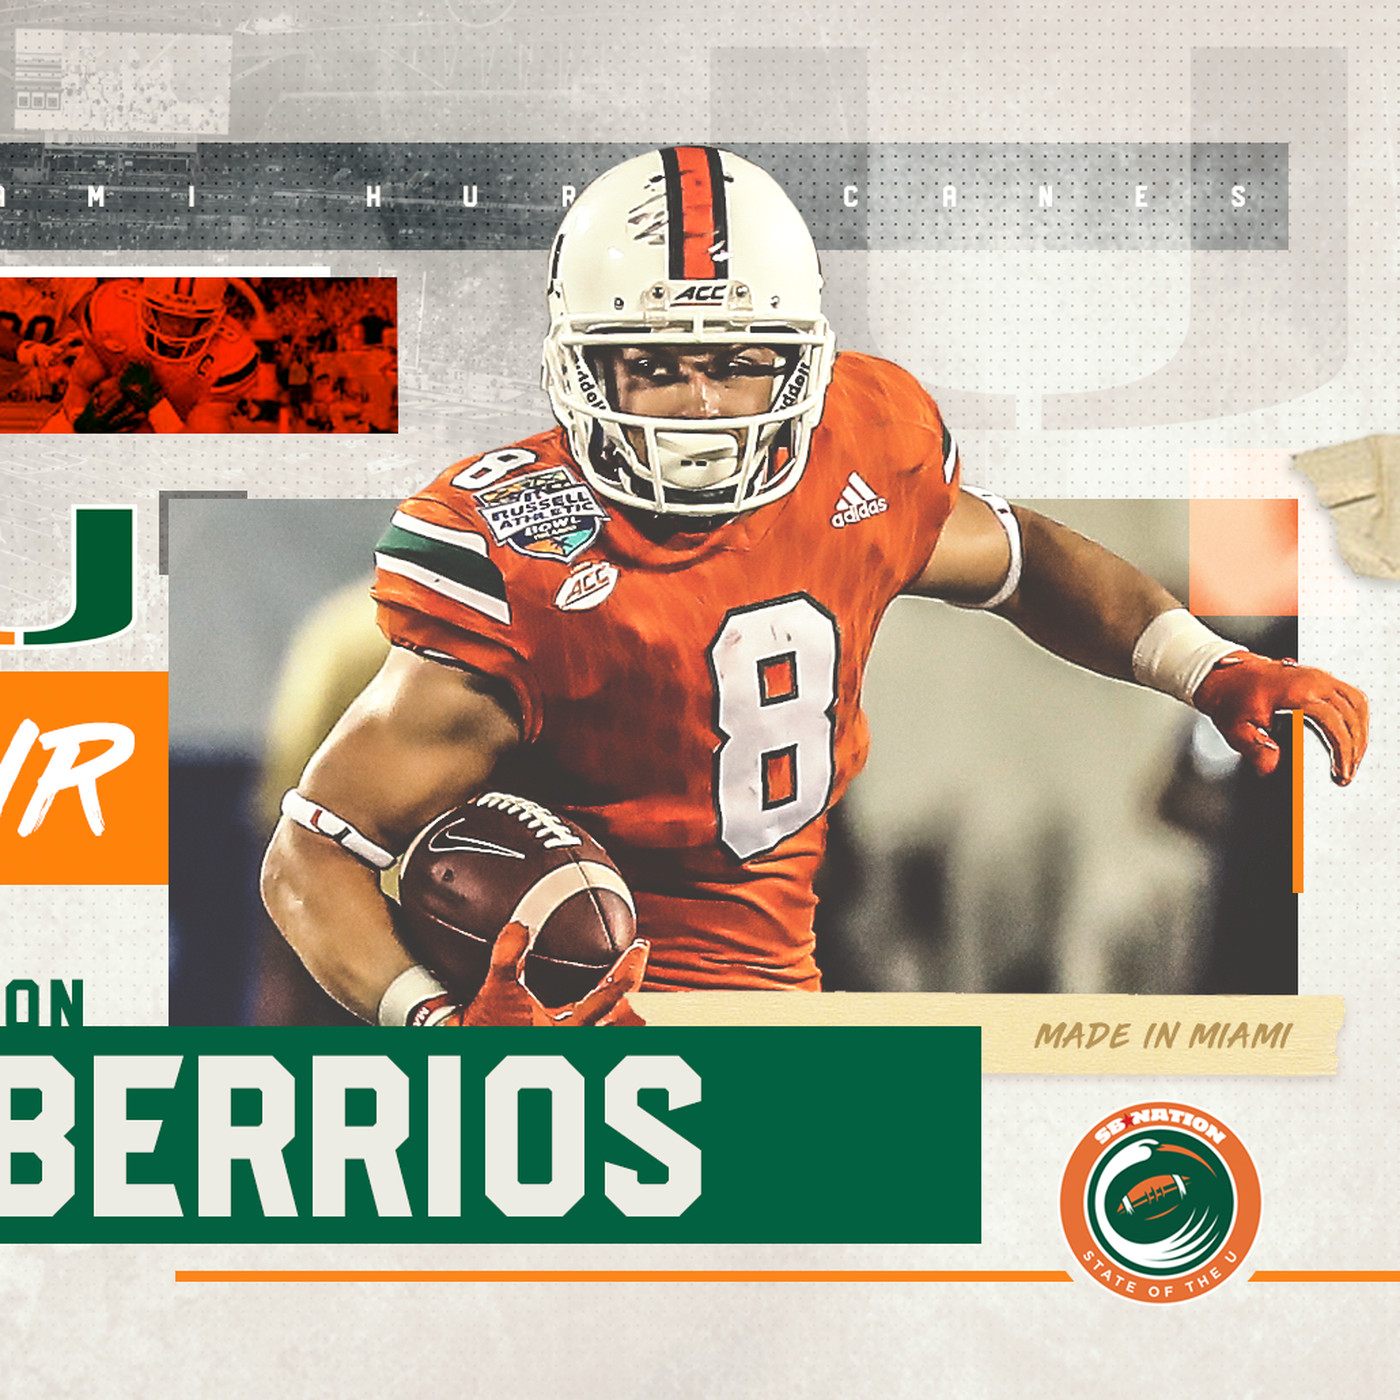 new style a912e 409f2 2018 NFL Draft: Miami Hurricanes WR Braxton Berrios Drafted ...